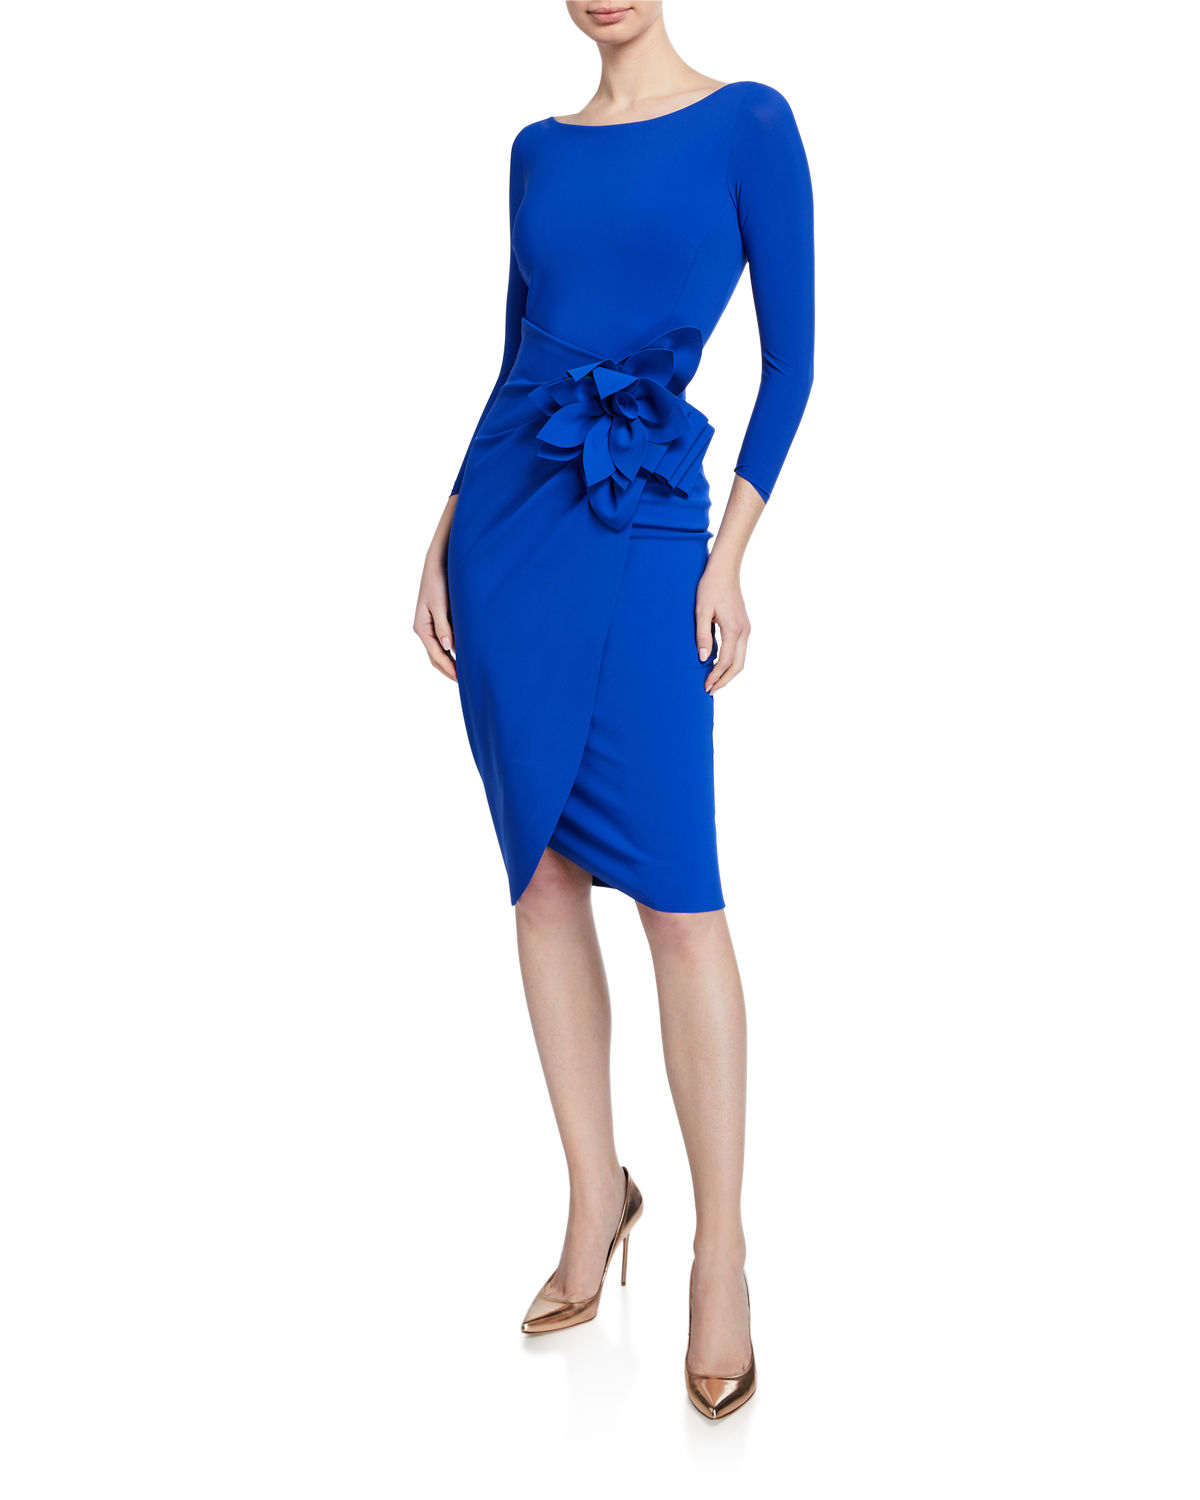 Chiara Boni La Petite Robe Dresses GLENALY BOAT-NECK 3/4-SLEEVE DRESS WITH APRON SKIRT & FLOWER DETAIL